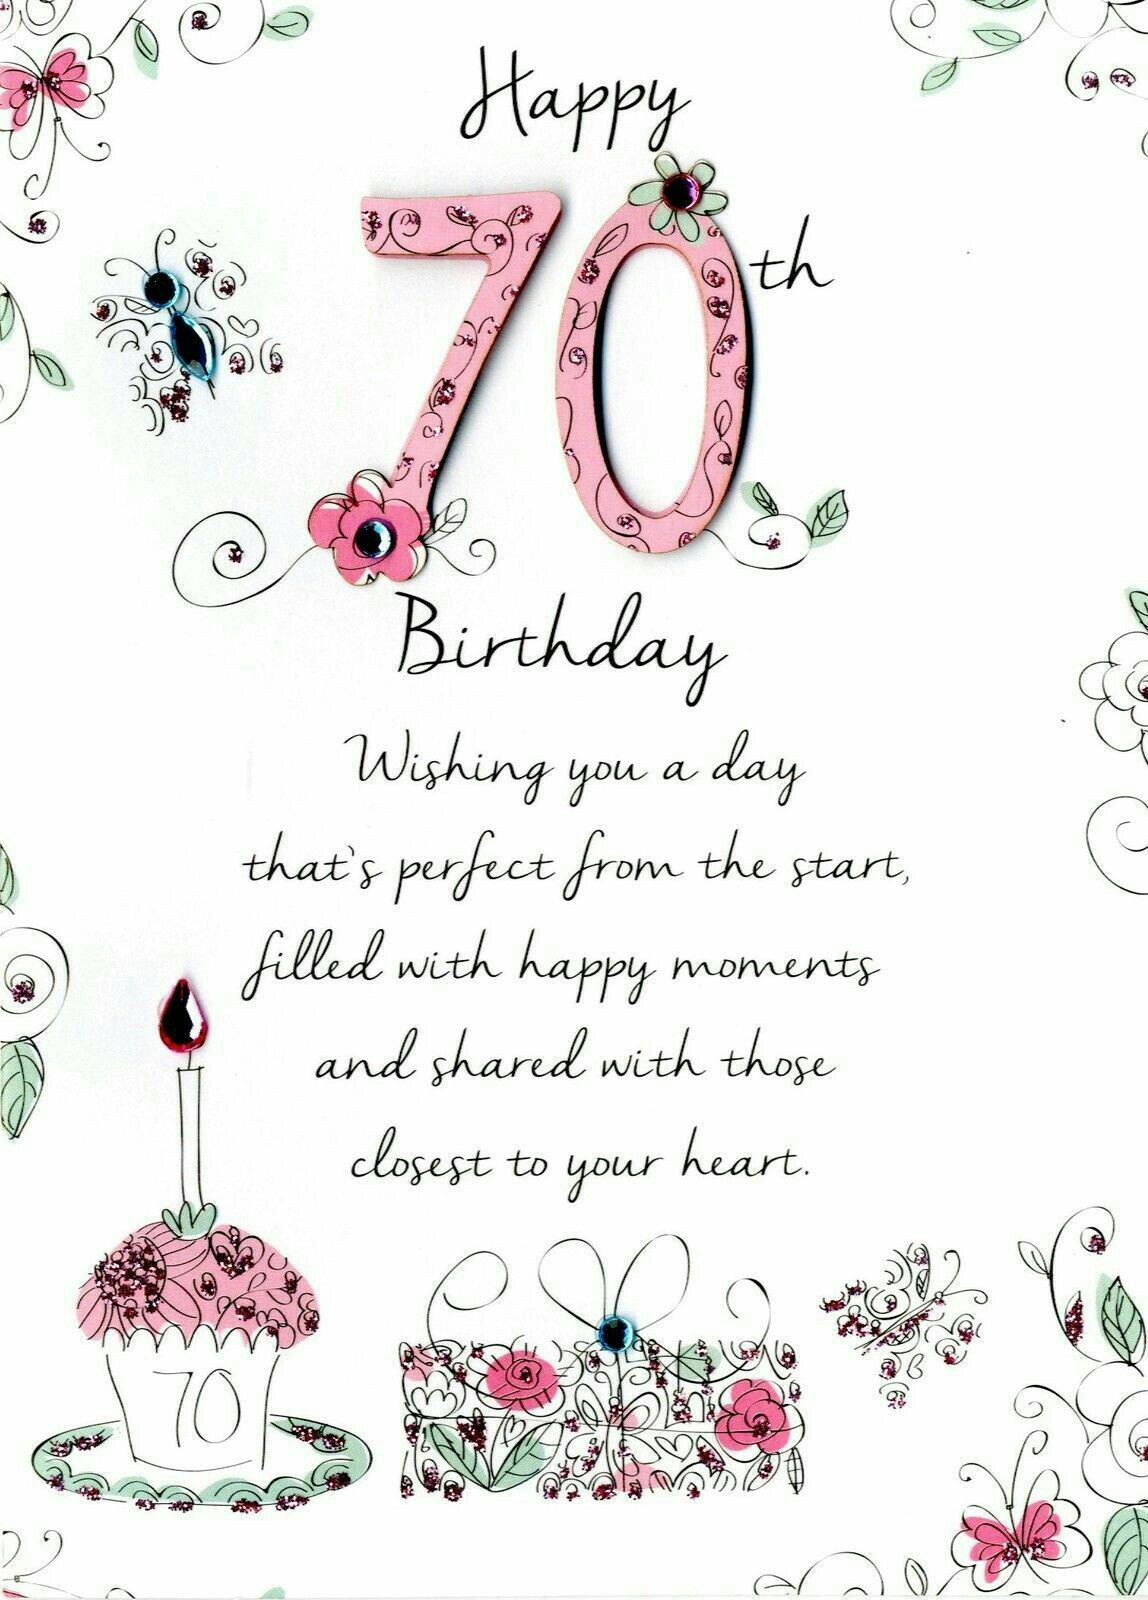 Birthday Love Art Special Wishes Verses 70th Card